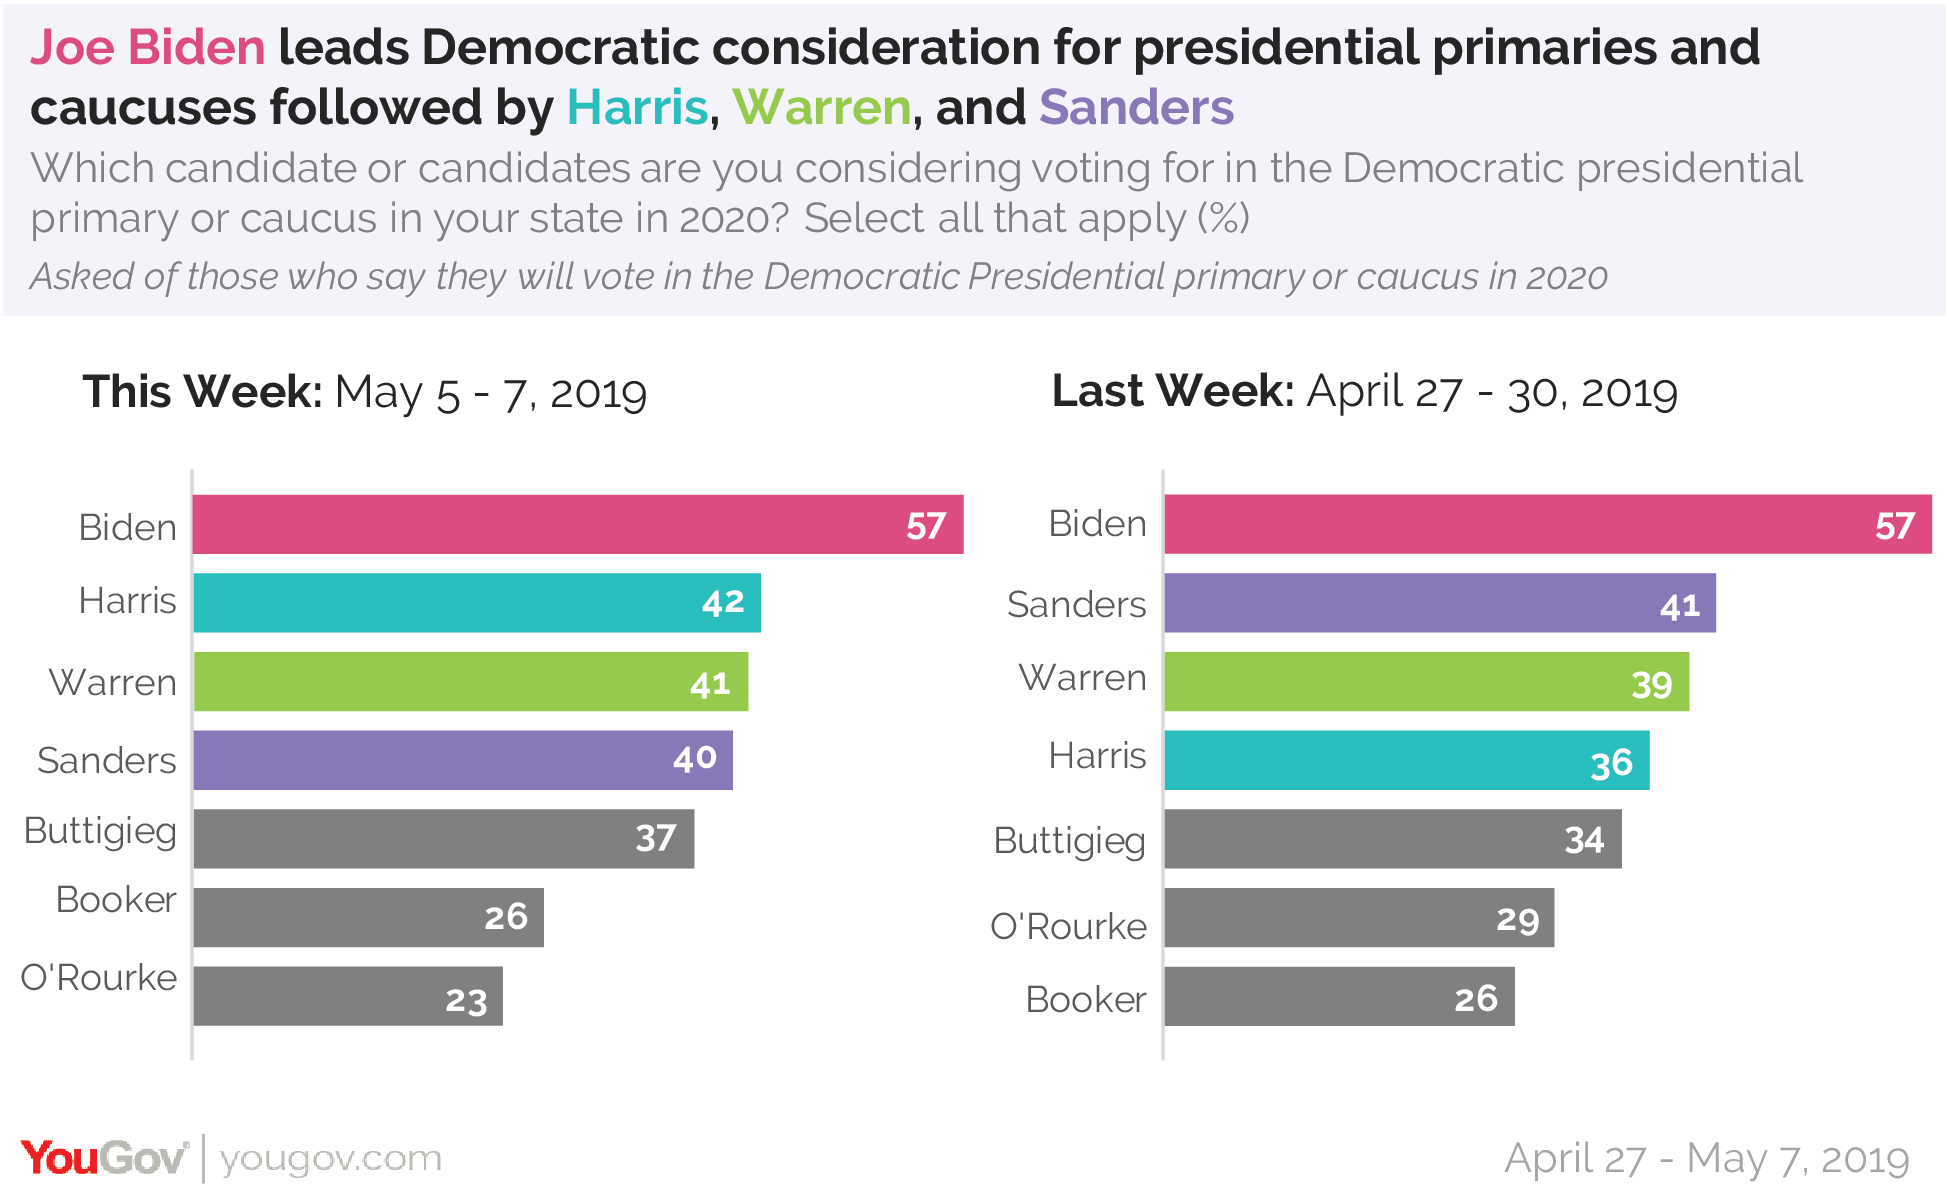 Joe Biden leads Democratic consideration for presidential primaries and caucuses followed by Harris, Warren, and Sanders